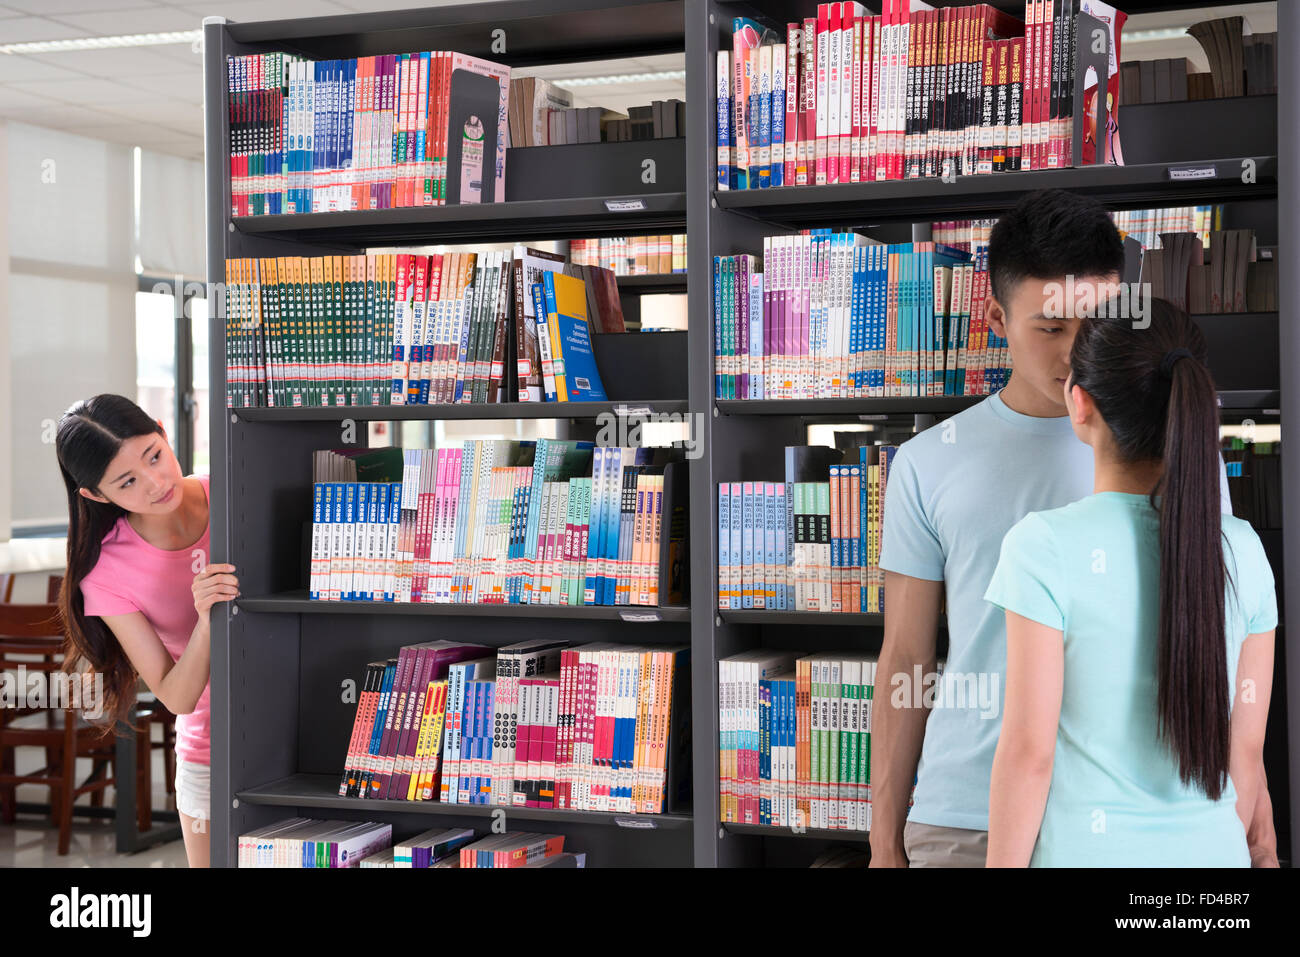 Unfaithful man caught cheating in library - Stock Image